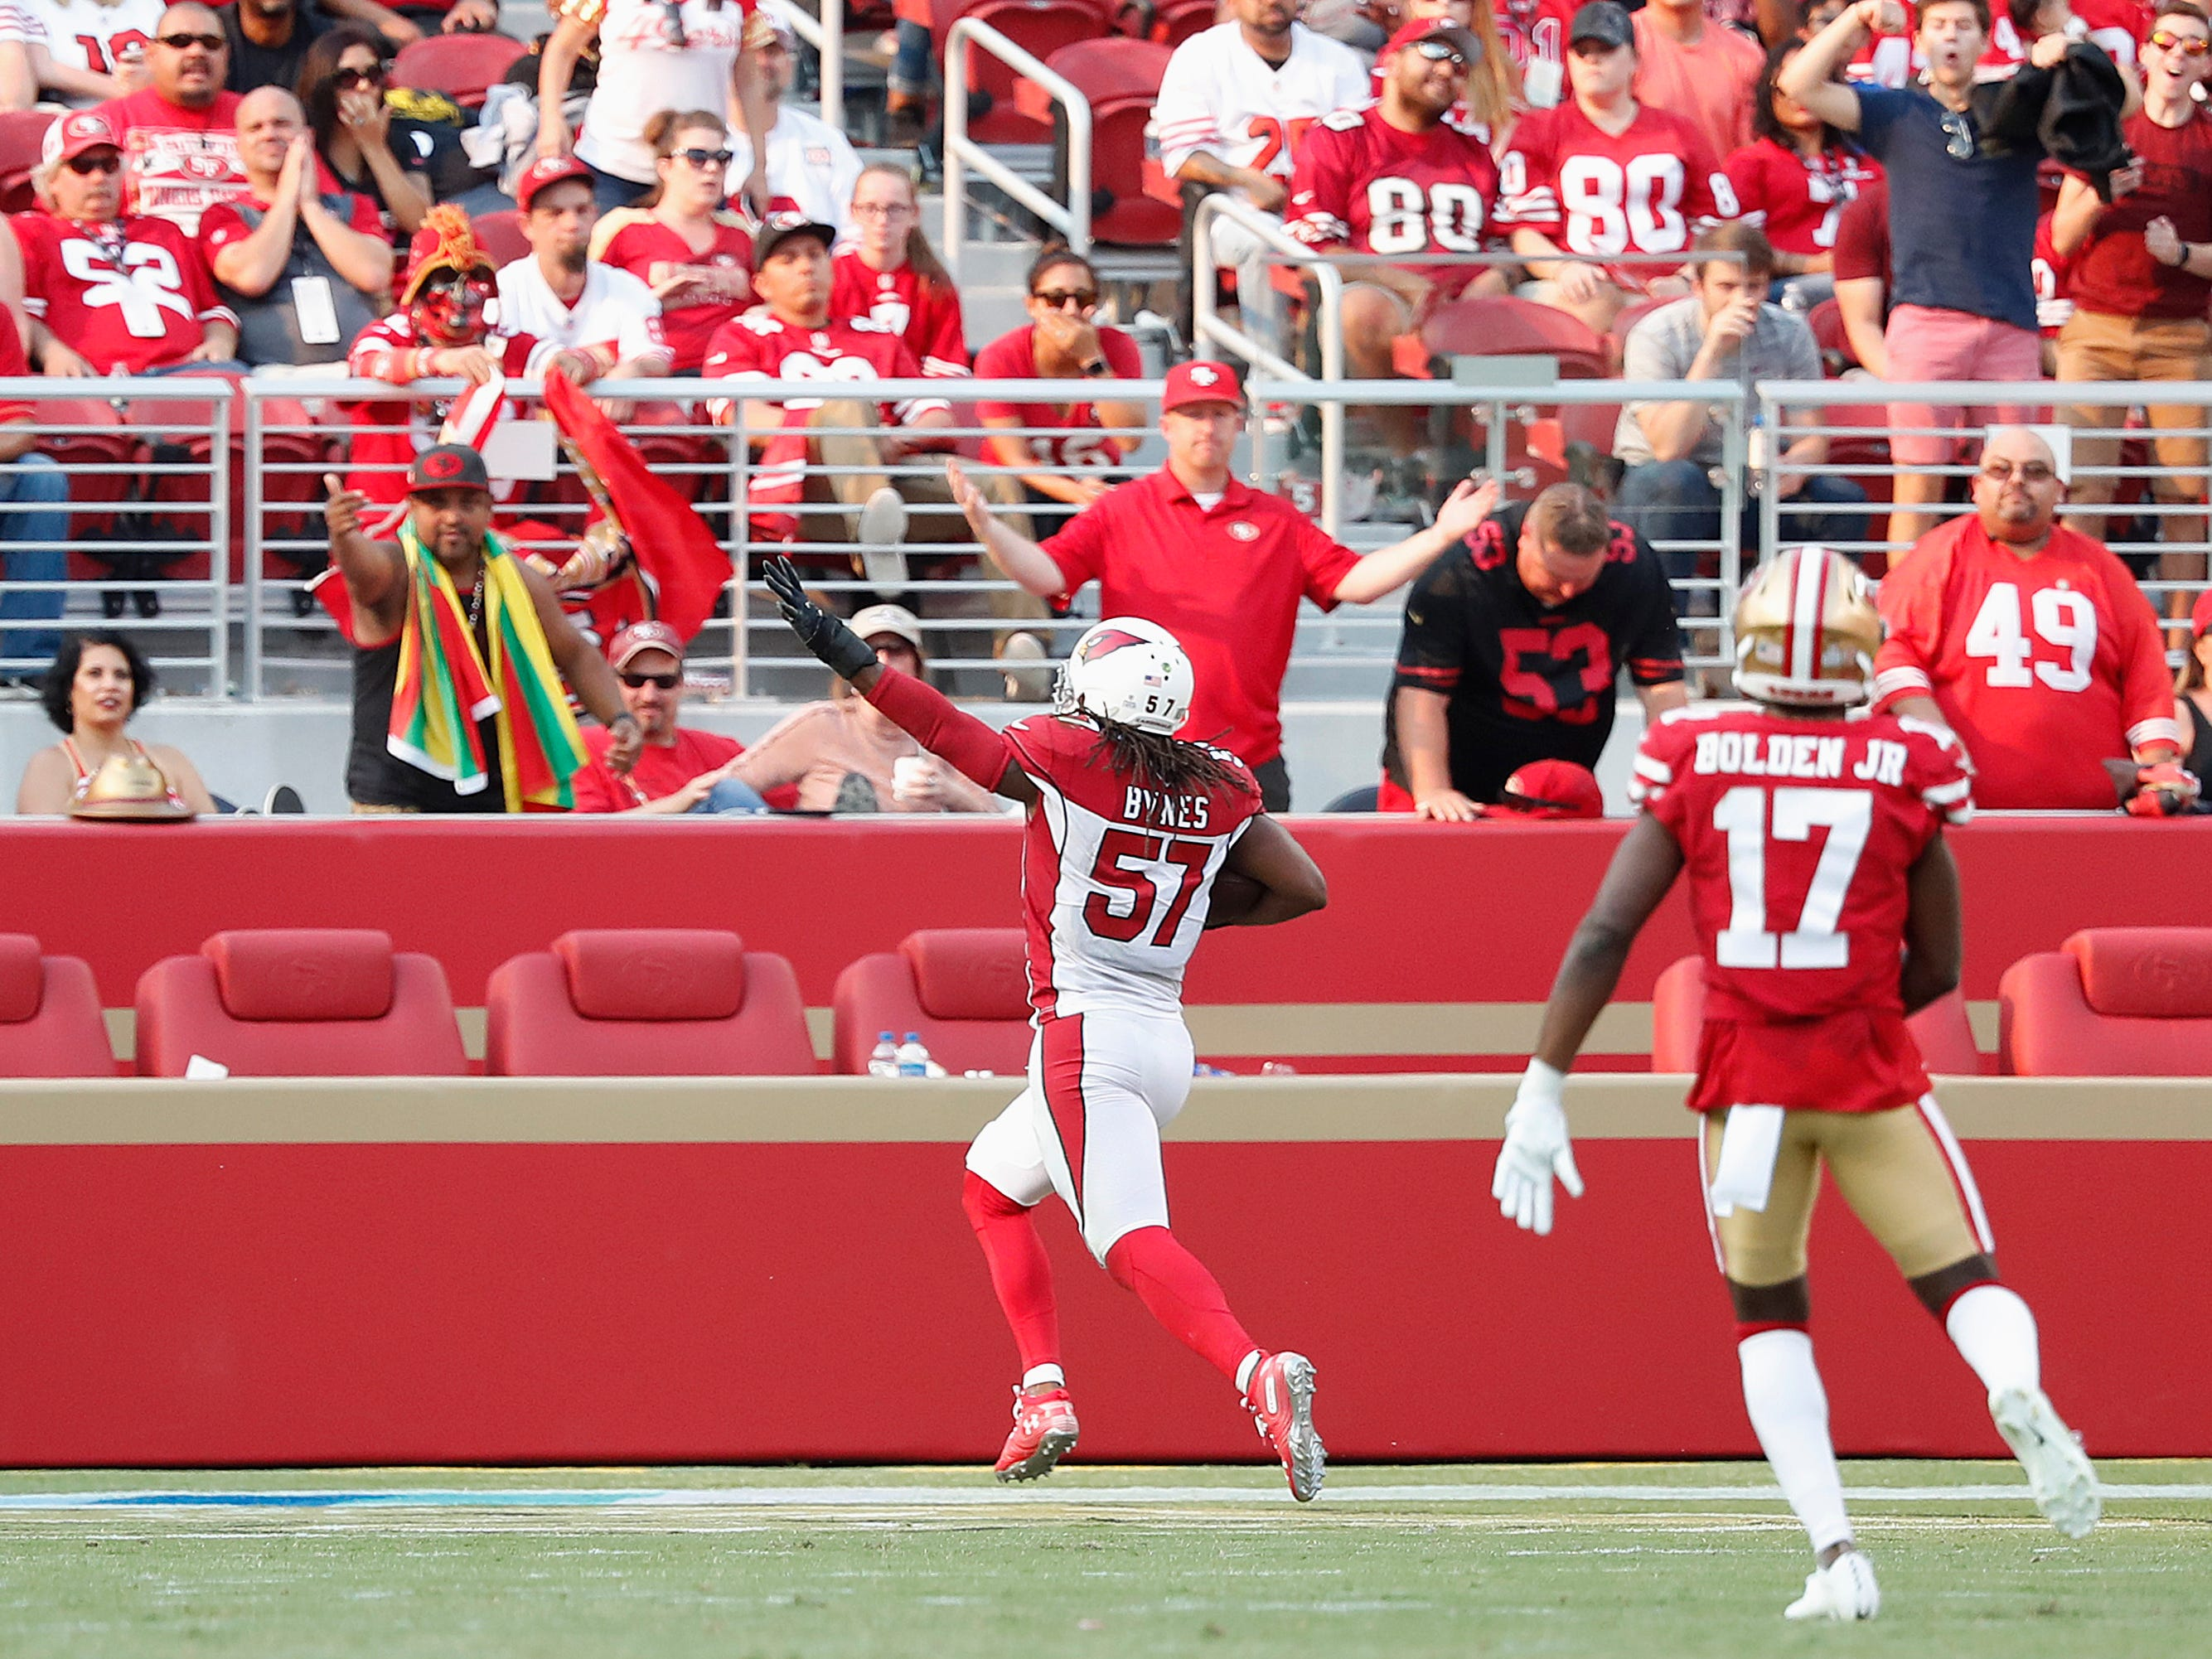 Arizona Cardinals linebacker Josh Bynes (57) scores a touchdown on a returned fumble in front of San Francisco 49ers wide receiver Victor Bolden Jr. (17) during the second half of an NFL football game in Santa Clara, Calif., Sunday, Oct. 7, 2018.